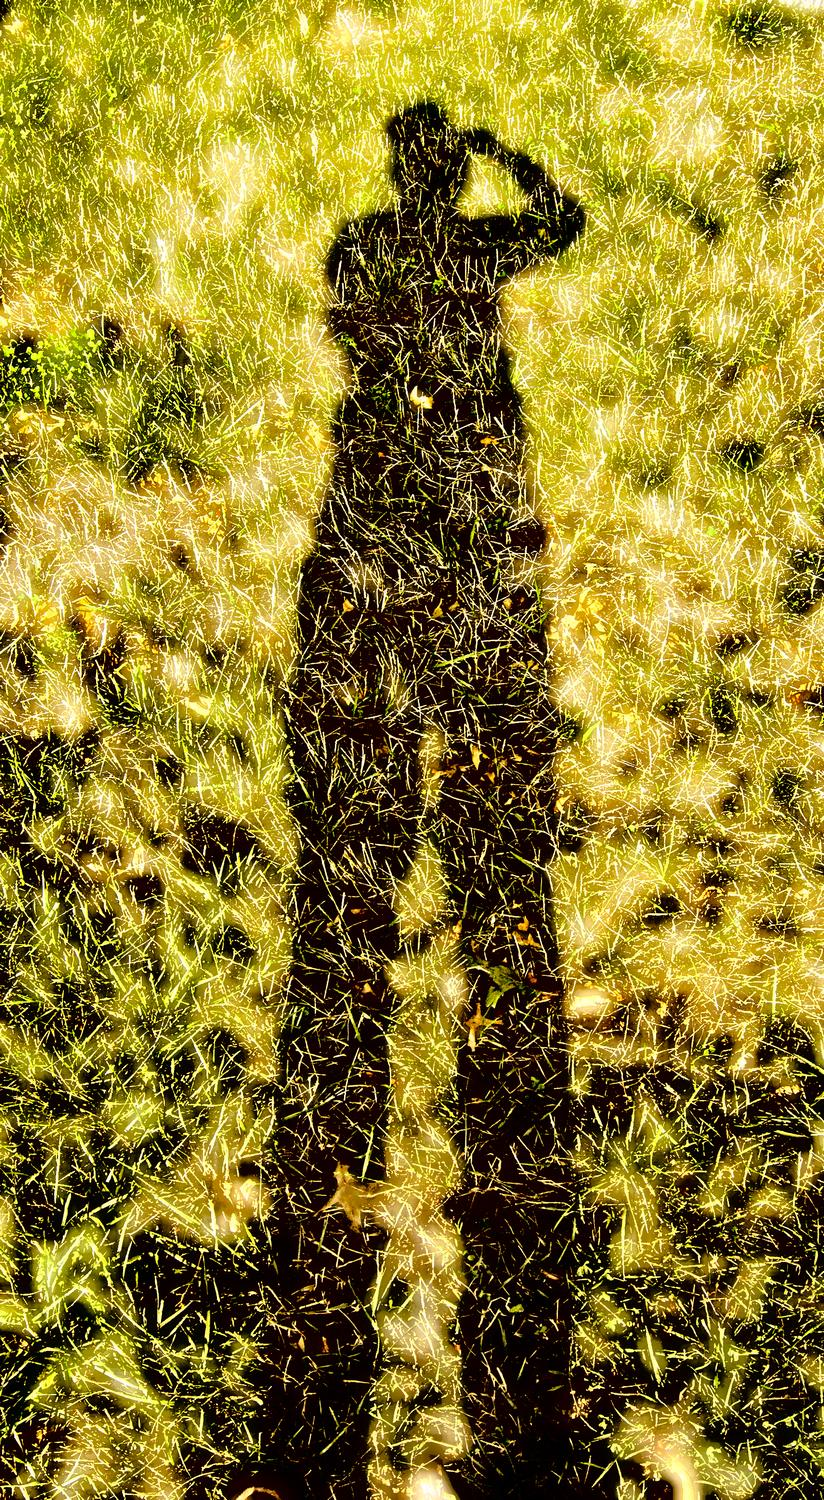 silhouette of the artist - Me on grass - Kodak Easyshare P880 - Tony Karp, design, art, photography, techno-impressionist, techno-impressionism, aerial photography , drone , drones , dji , mavic pro , video , 3D printing - Books -